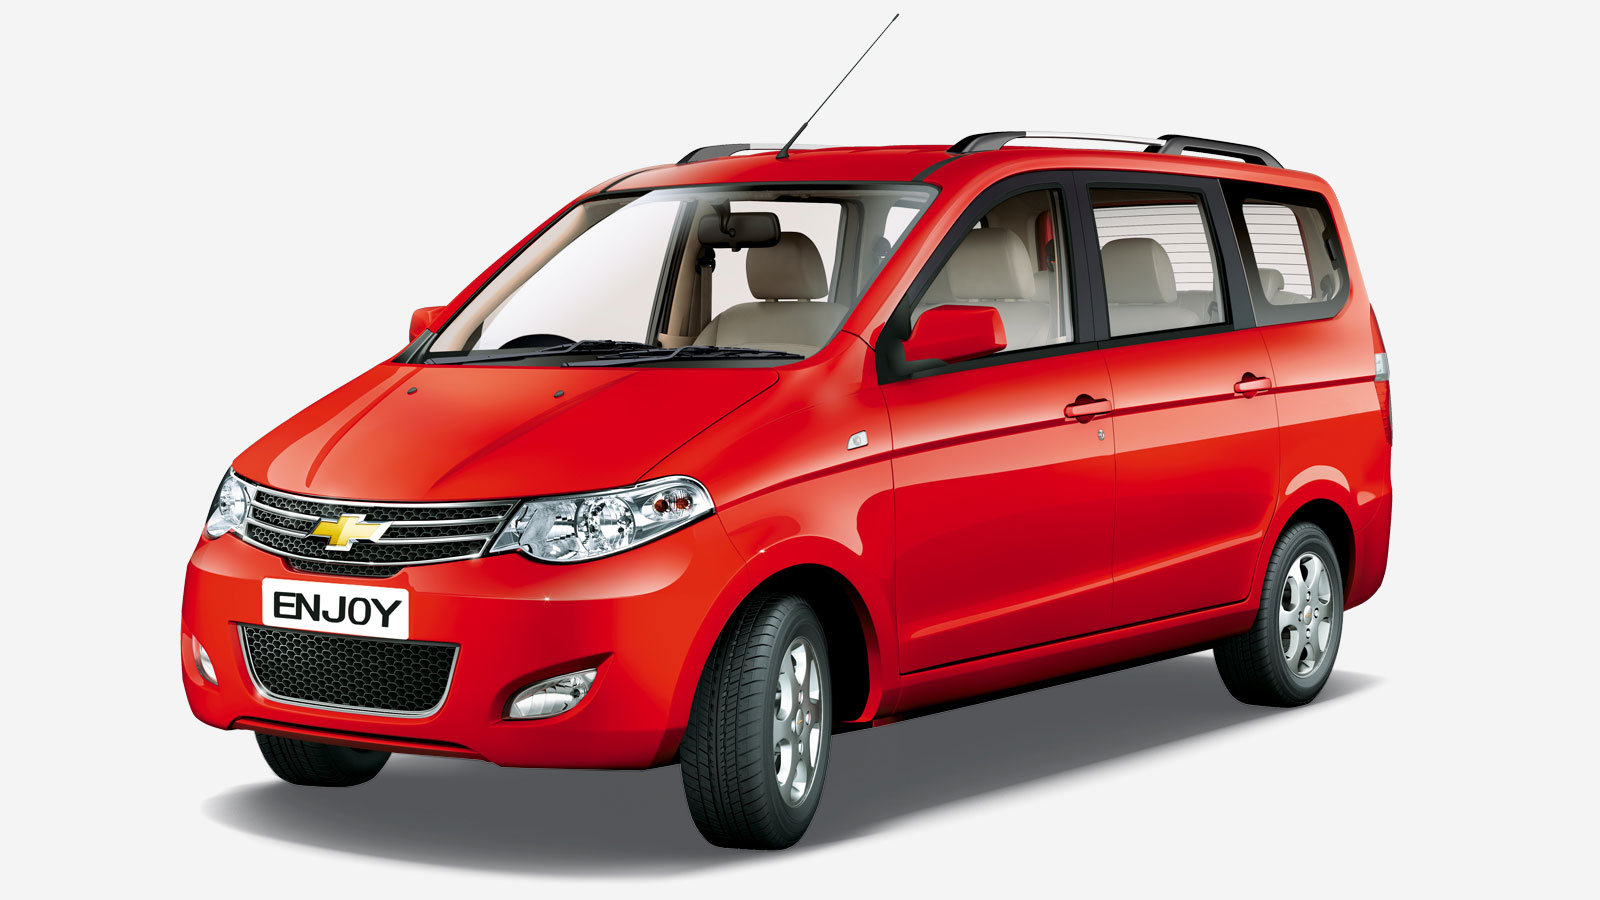 Chevrolet Enjoy MPV Exterior Picture Gallery | Chevrolet India